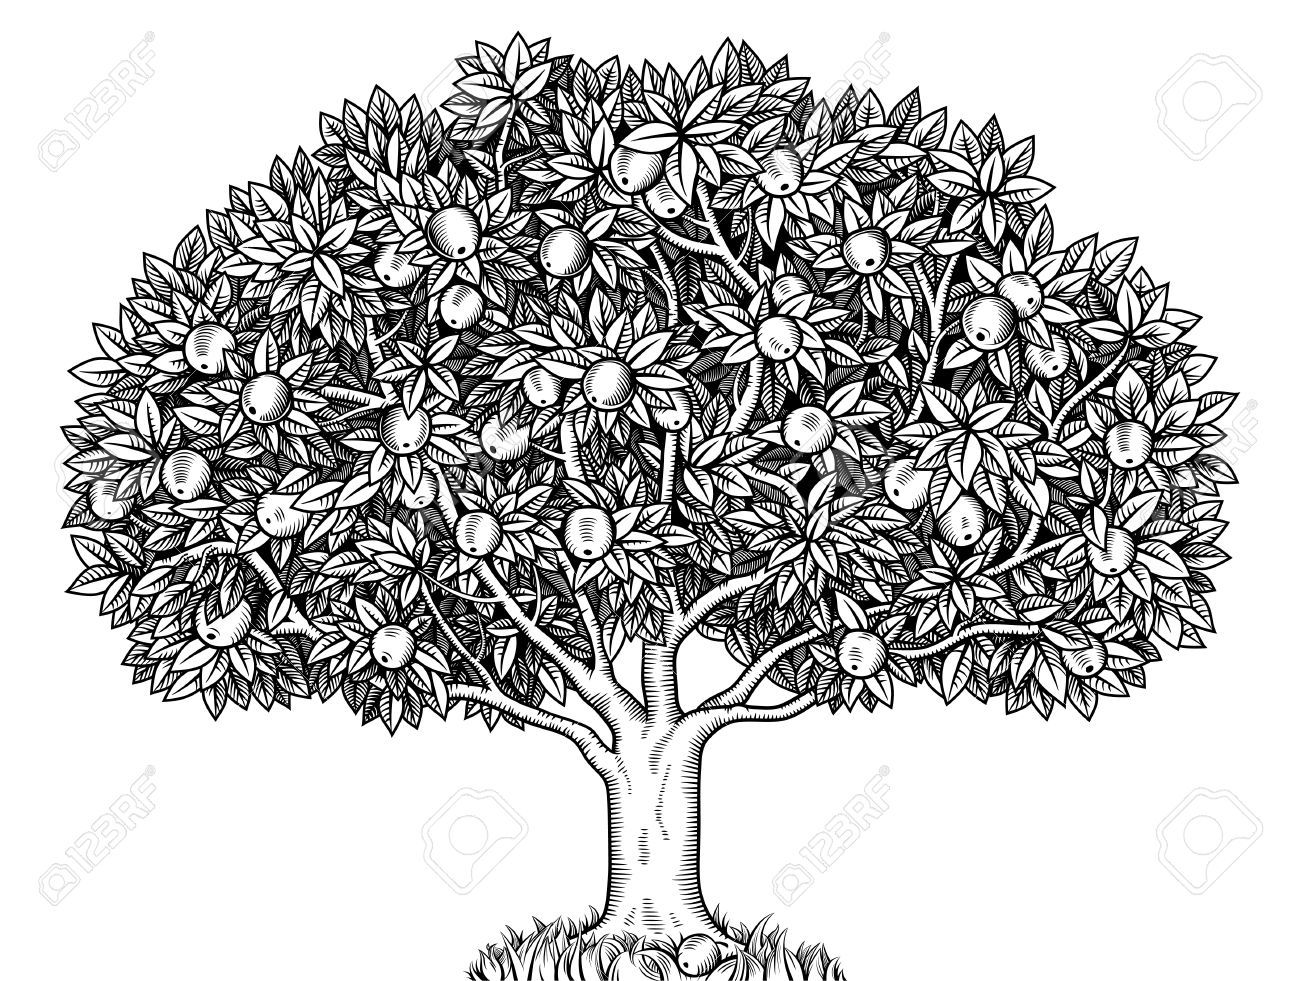 42+ Fruit tree clipart black and white ideas